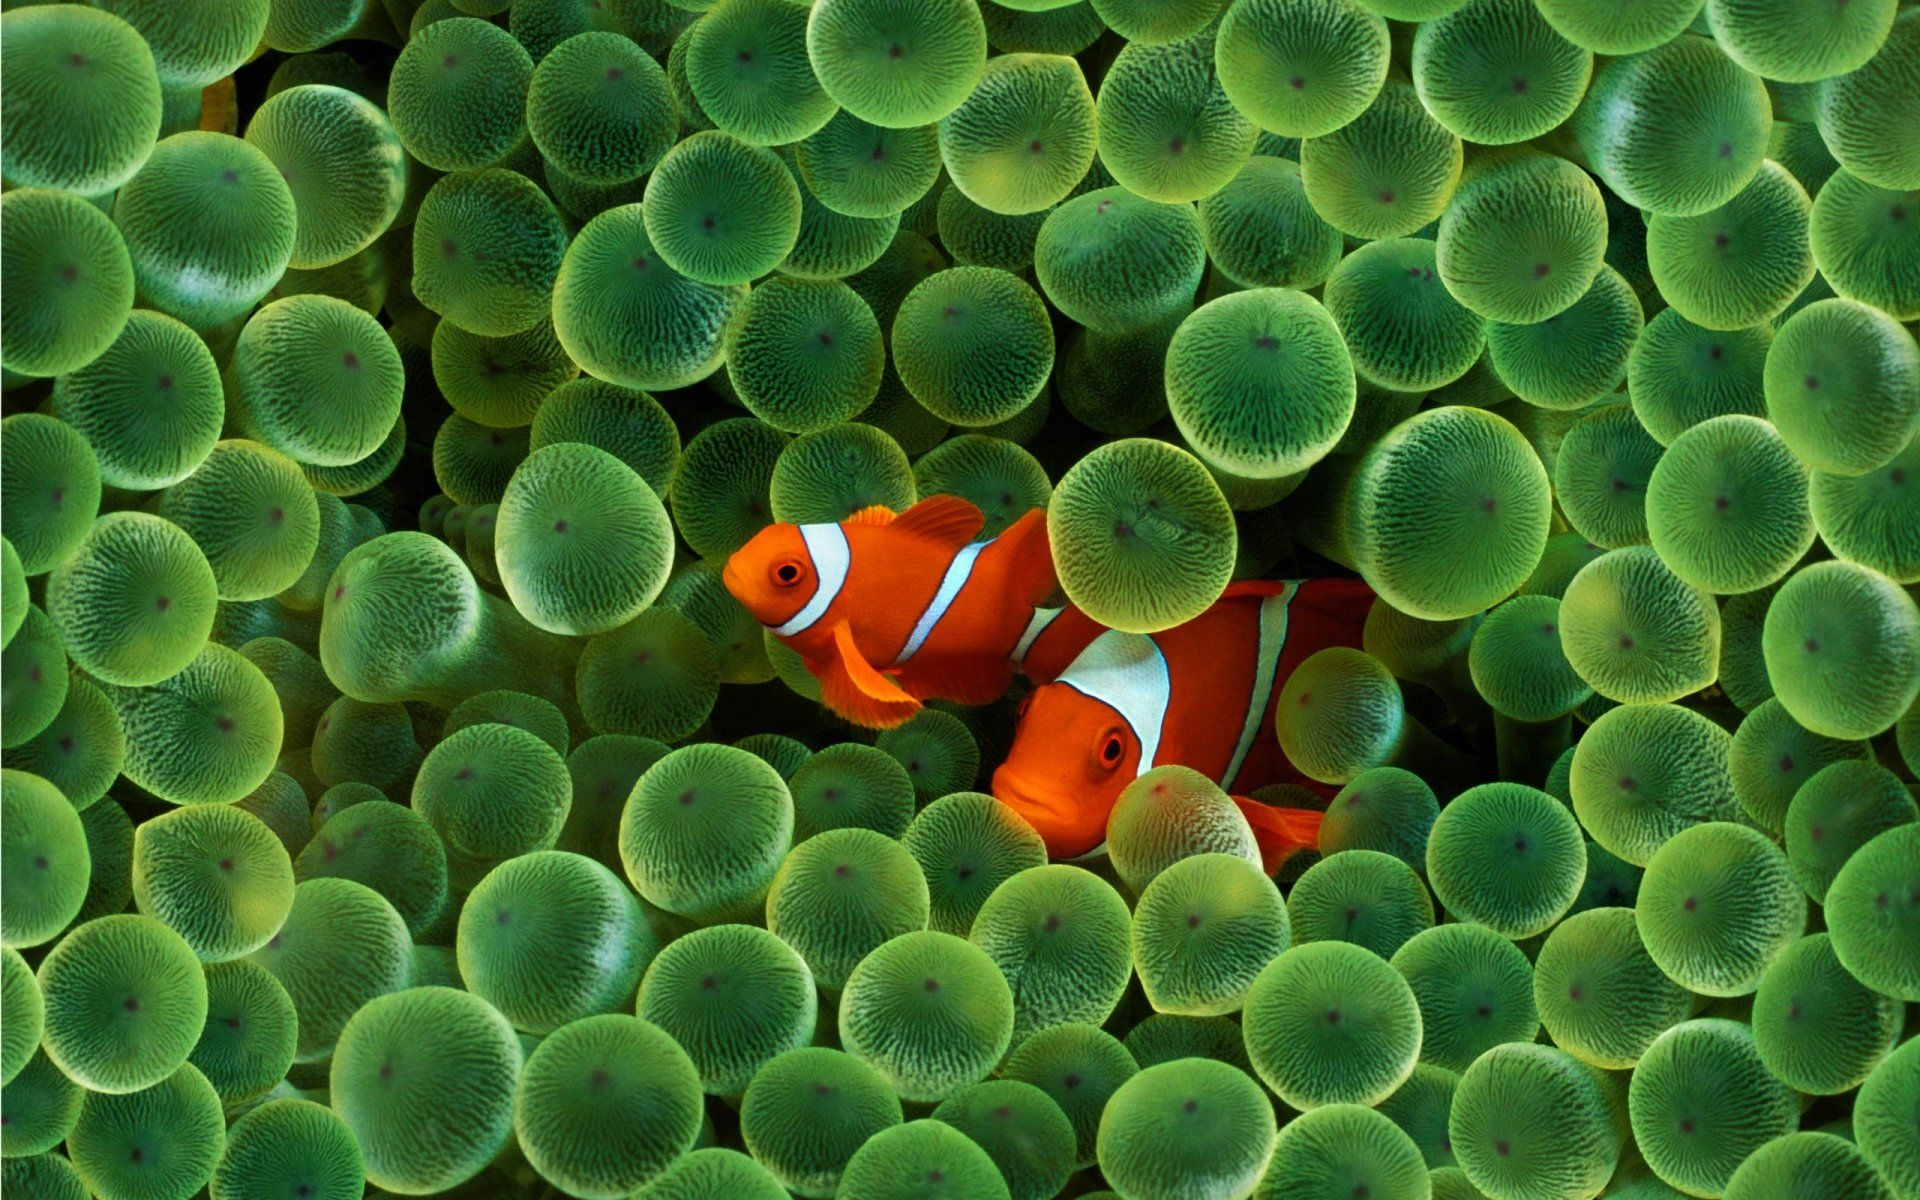 Iphone Clownfish Wallpaper 4k Mywallpapers Site Fish Wallpaper Clown Fish Underwater Wallpaper